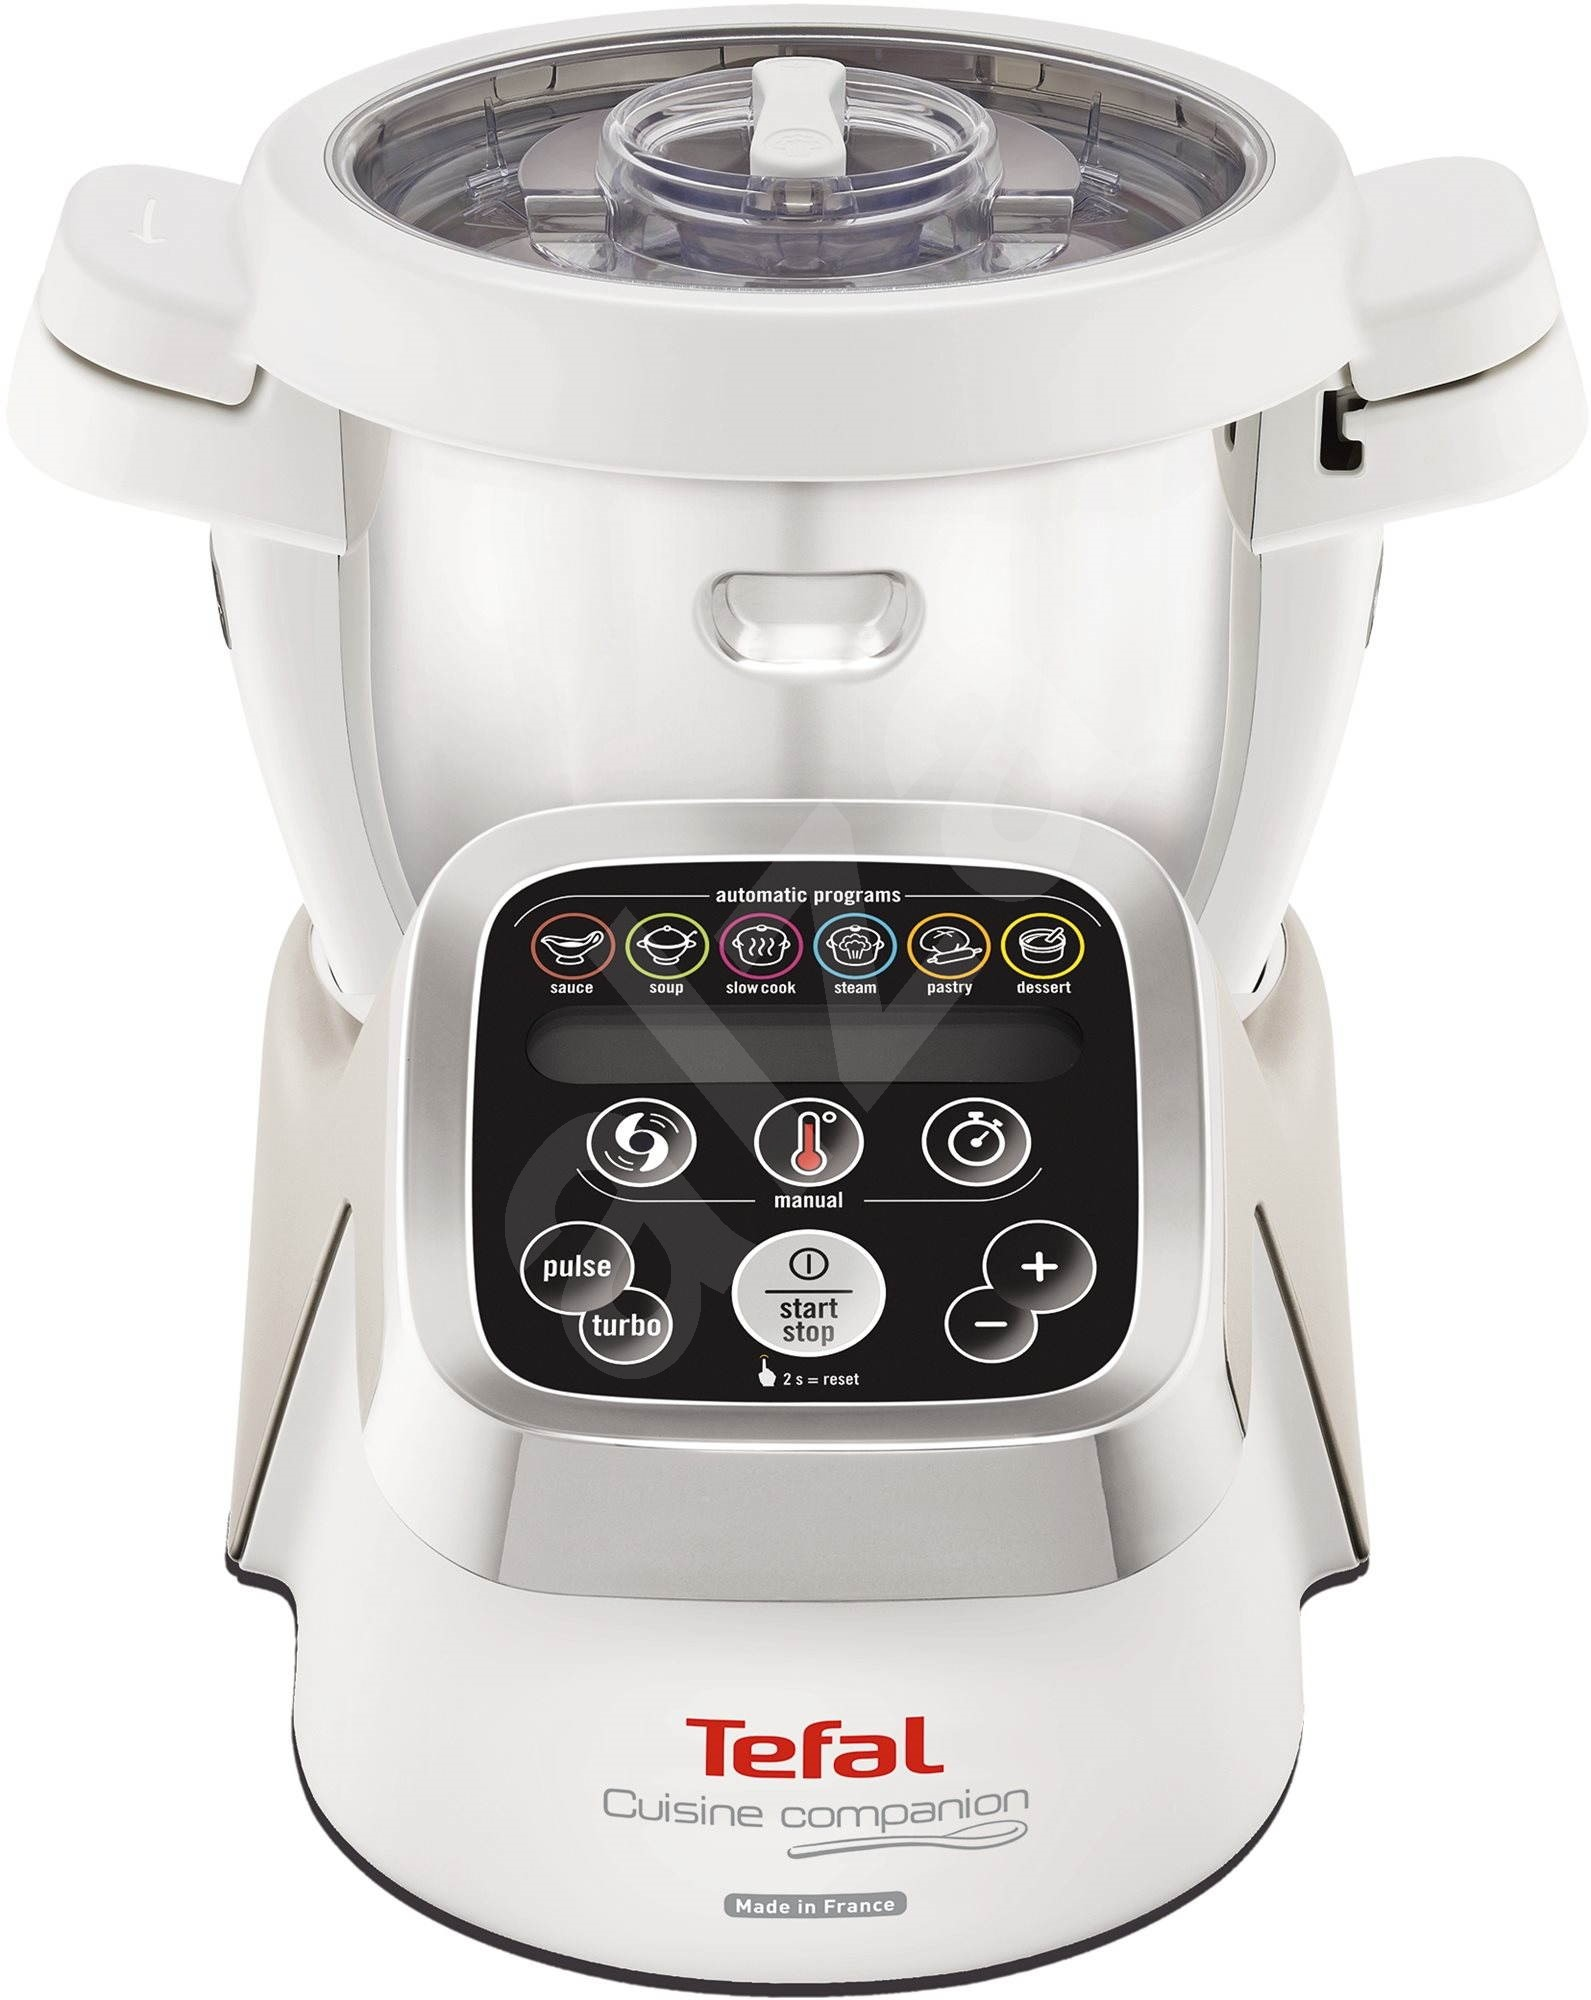 tefal cuisine companion fe800a food processor. Black Bedroom Furniture Sets. Home Design Ideas